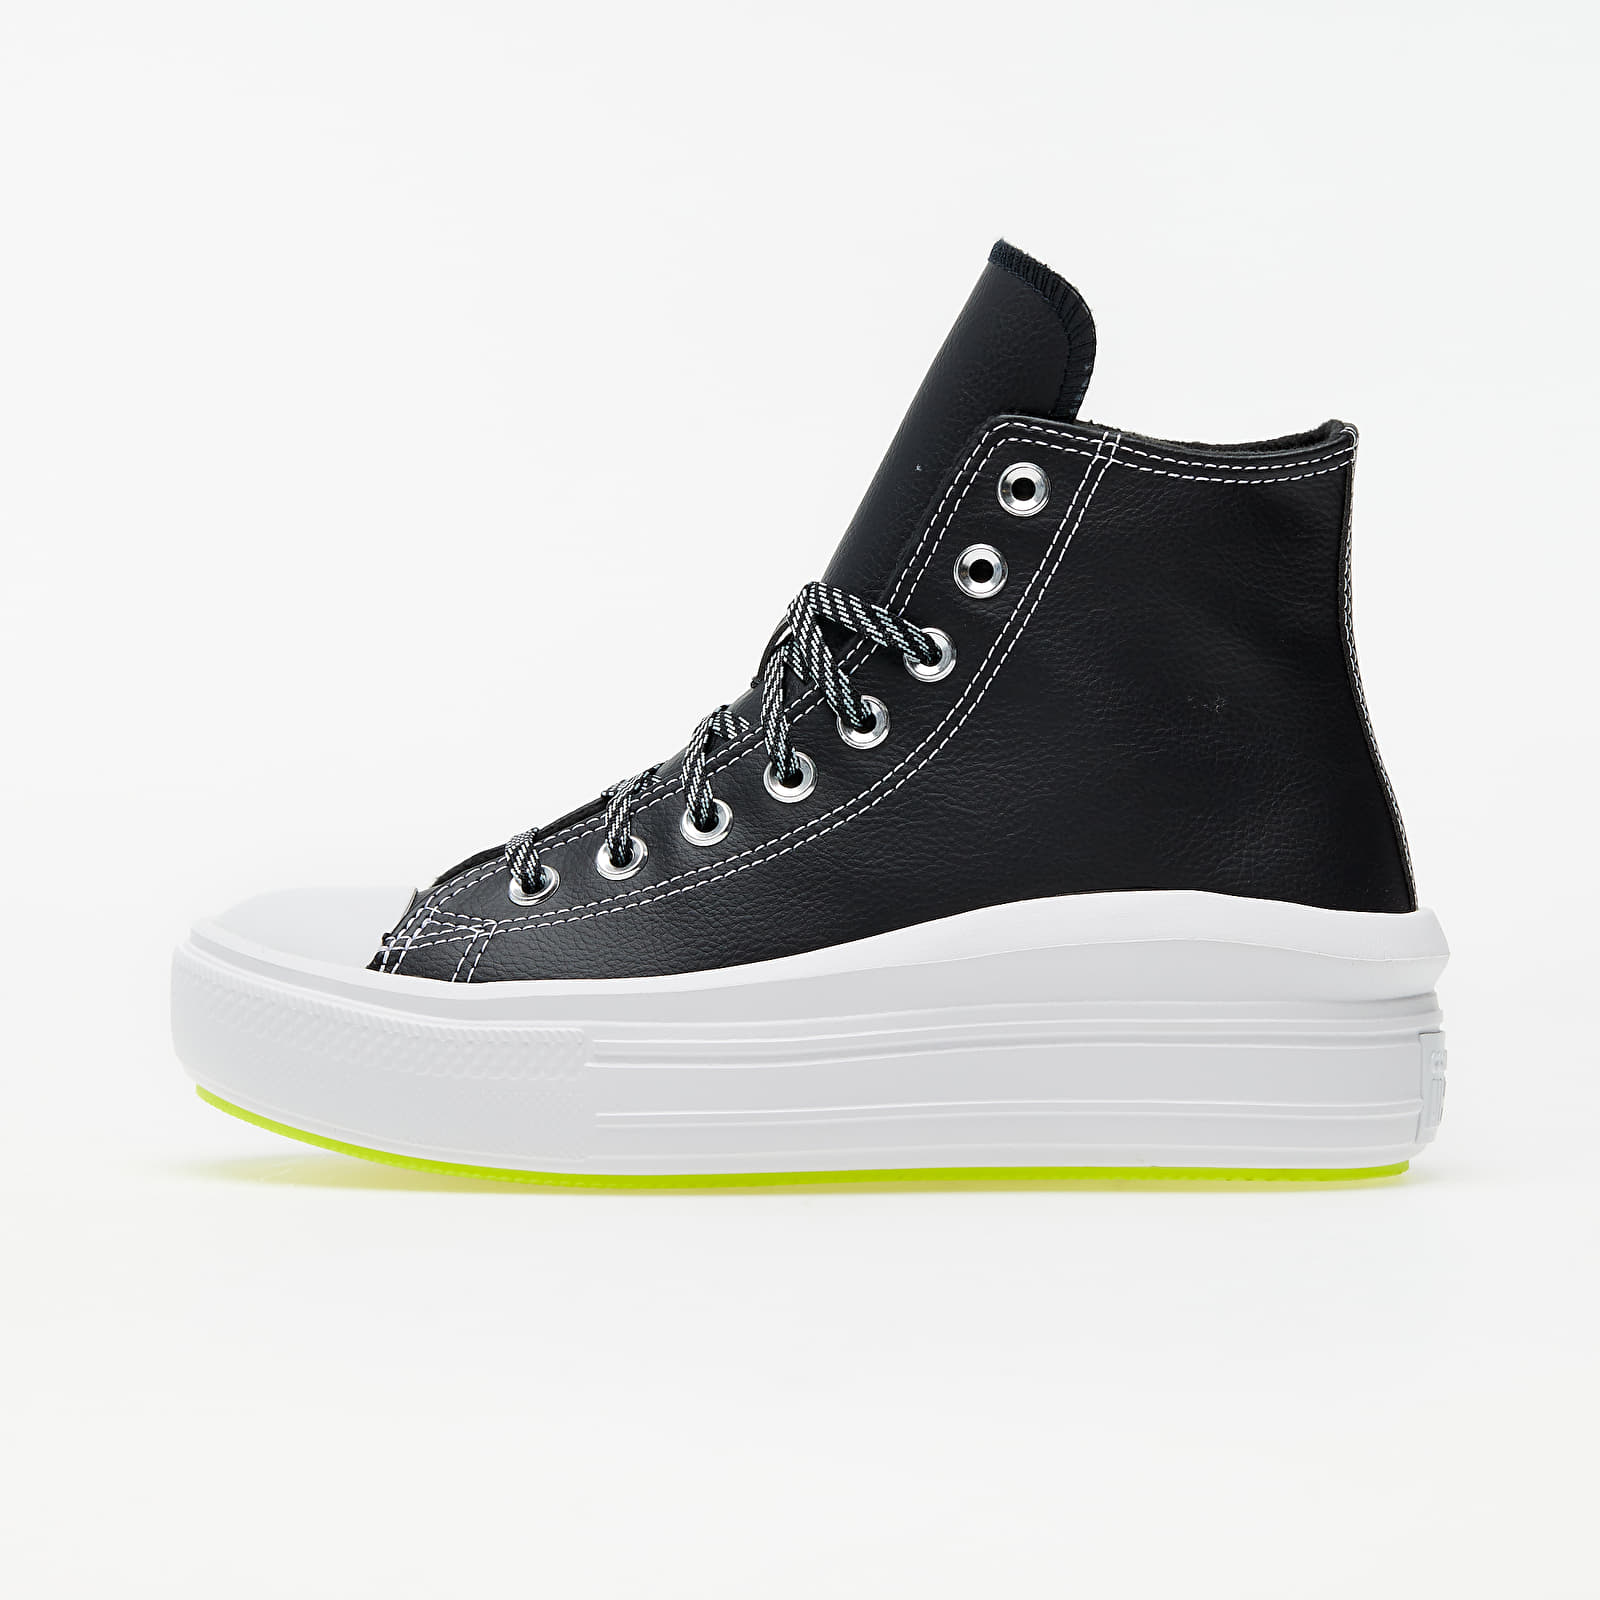 Women's shoes Converse Chuck Taylor All Star Move Hi Black/ Lemon Venom/ White